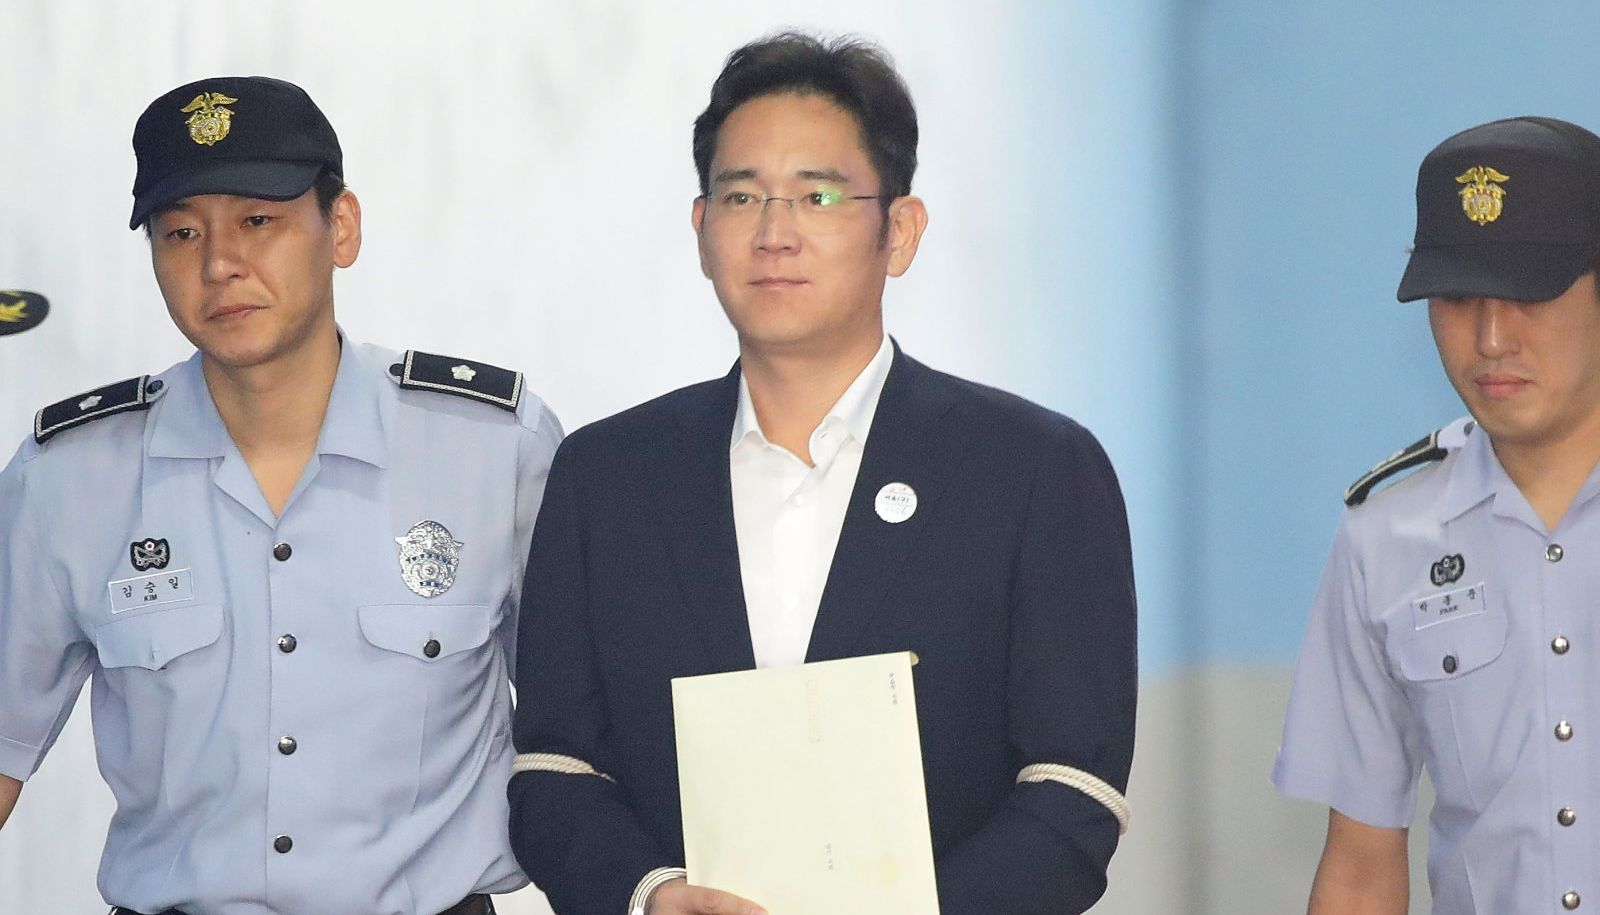 The head of the company Samsung will spend five years in prison